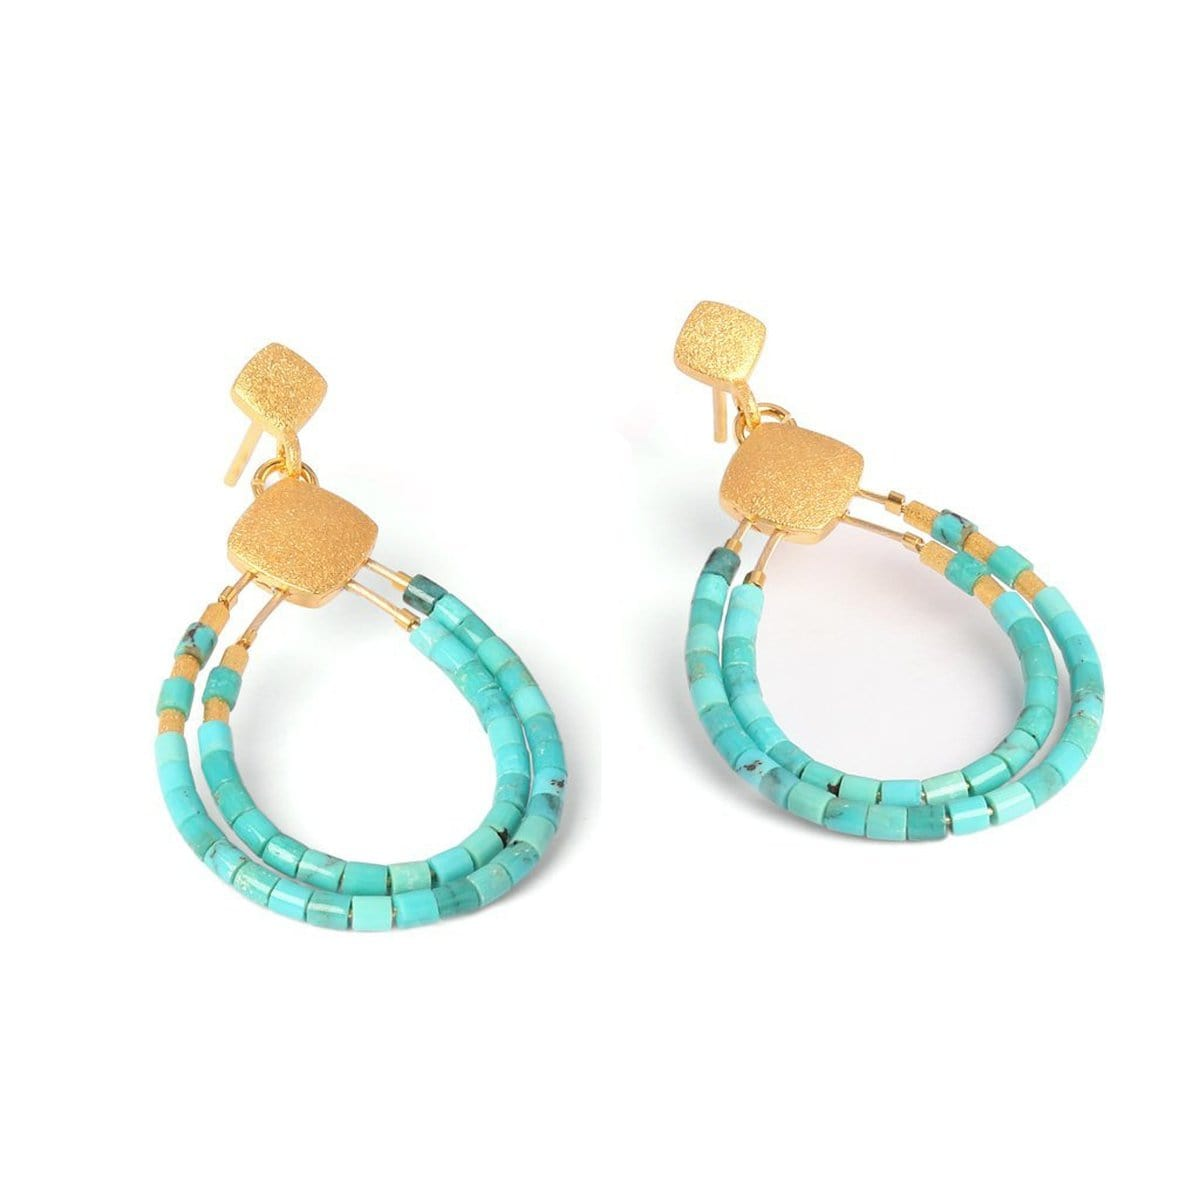 Clini Turquoise Earrings - 15576256-Bernd Wolf-Renee Taylor Gallery